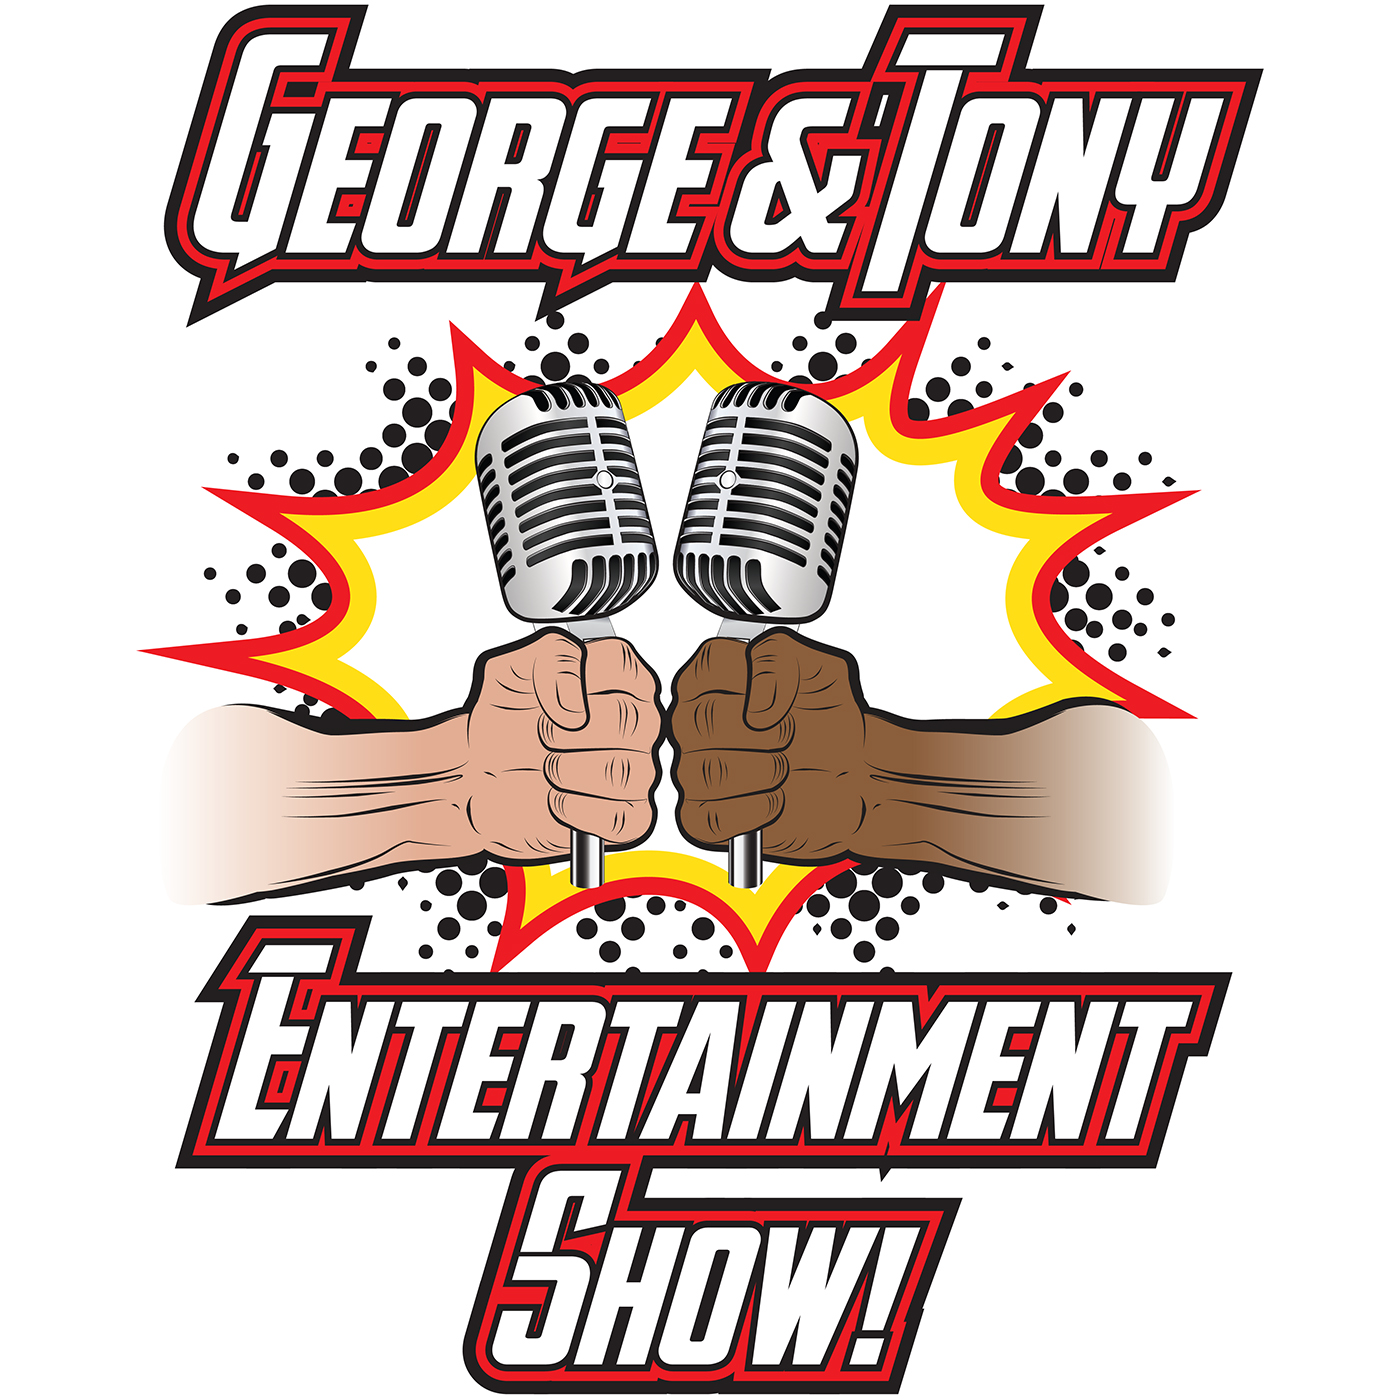 George and Tony Entertainment Show #43